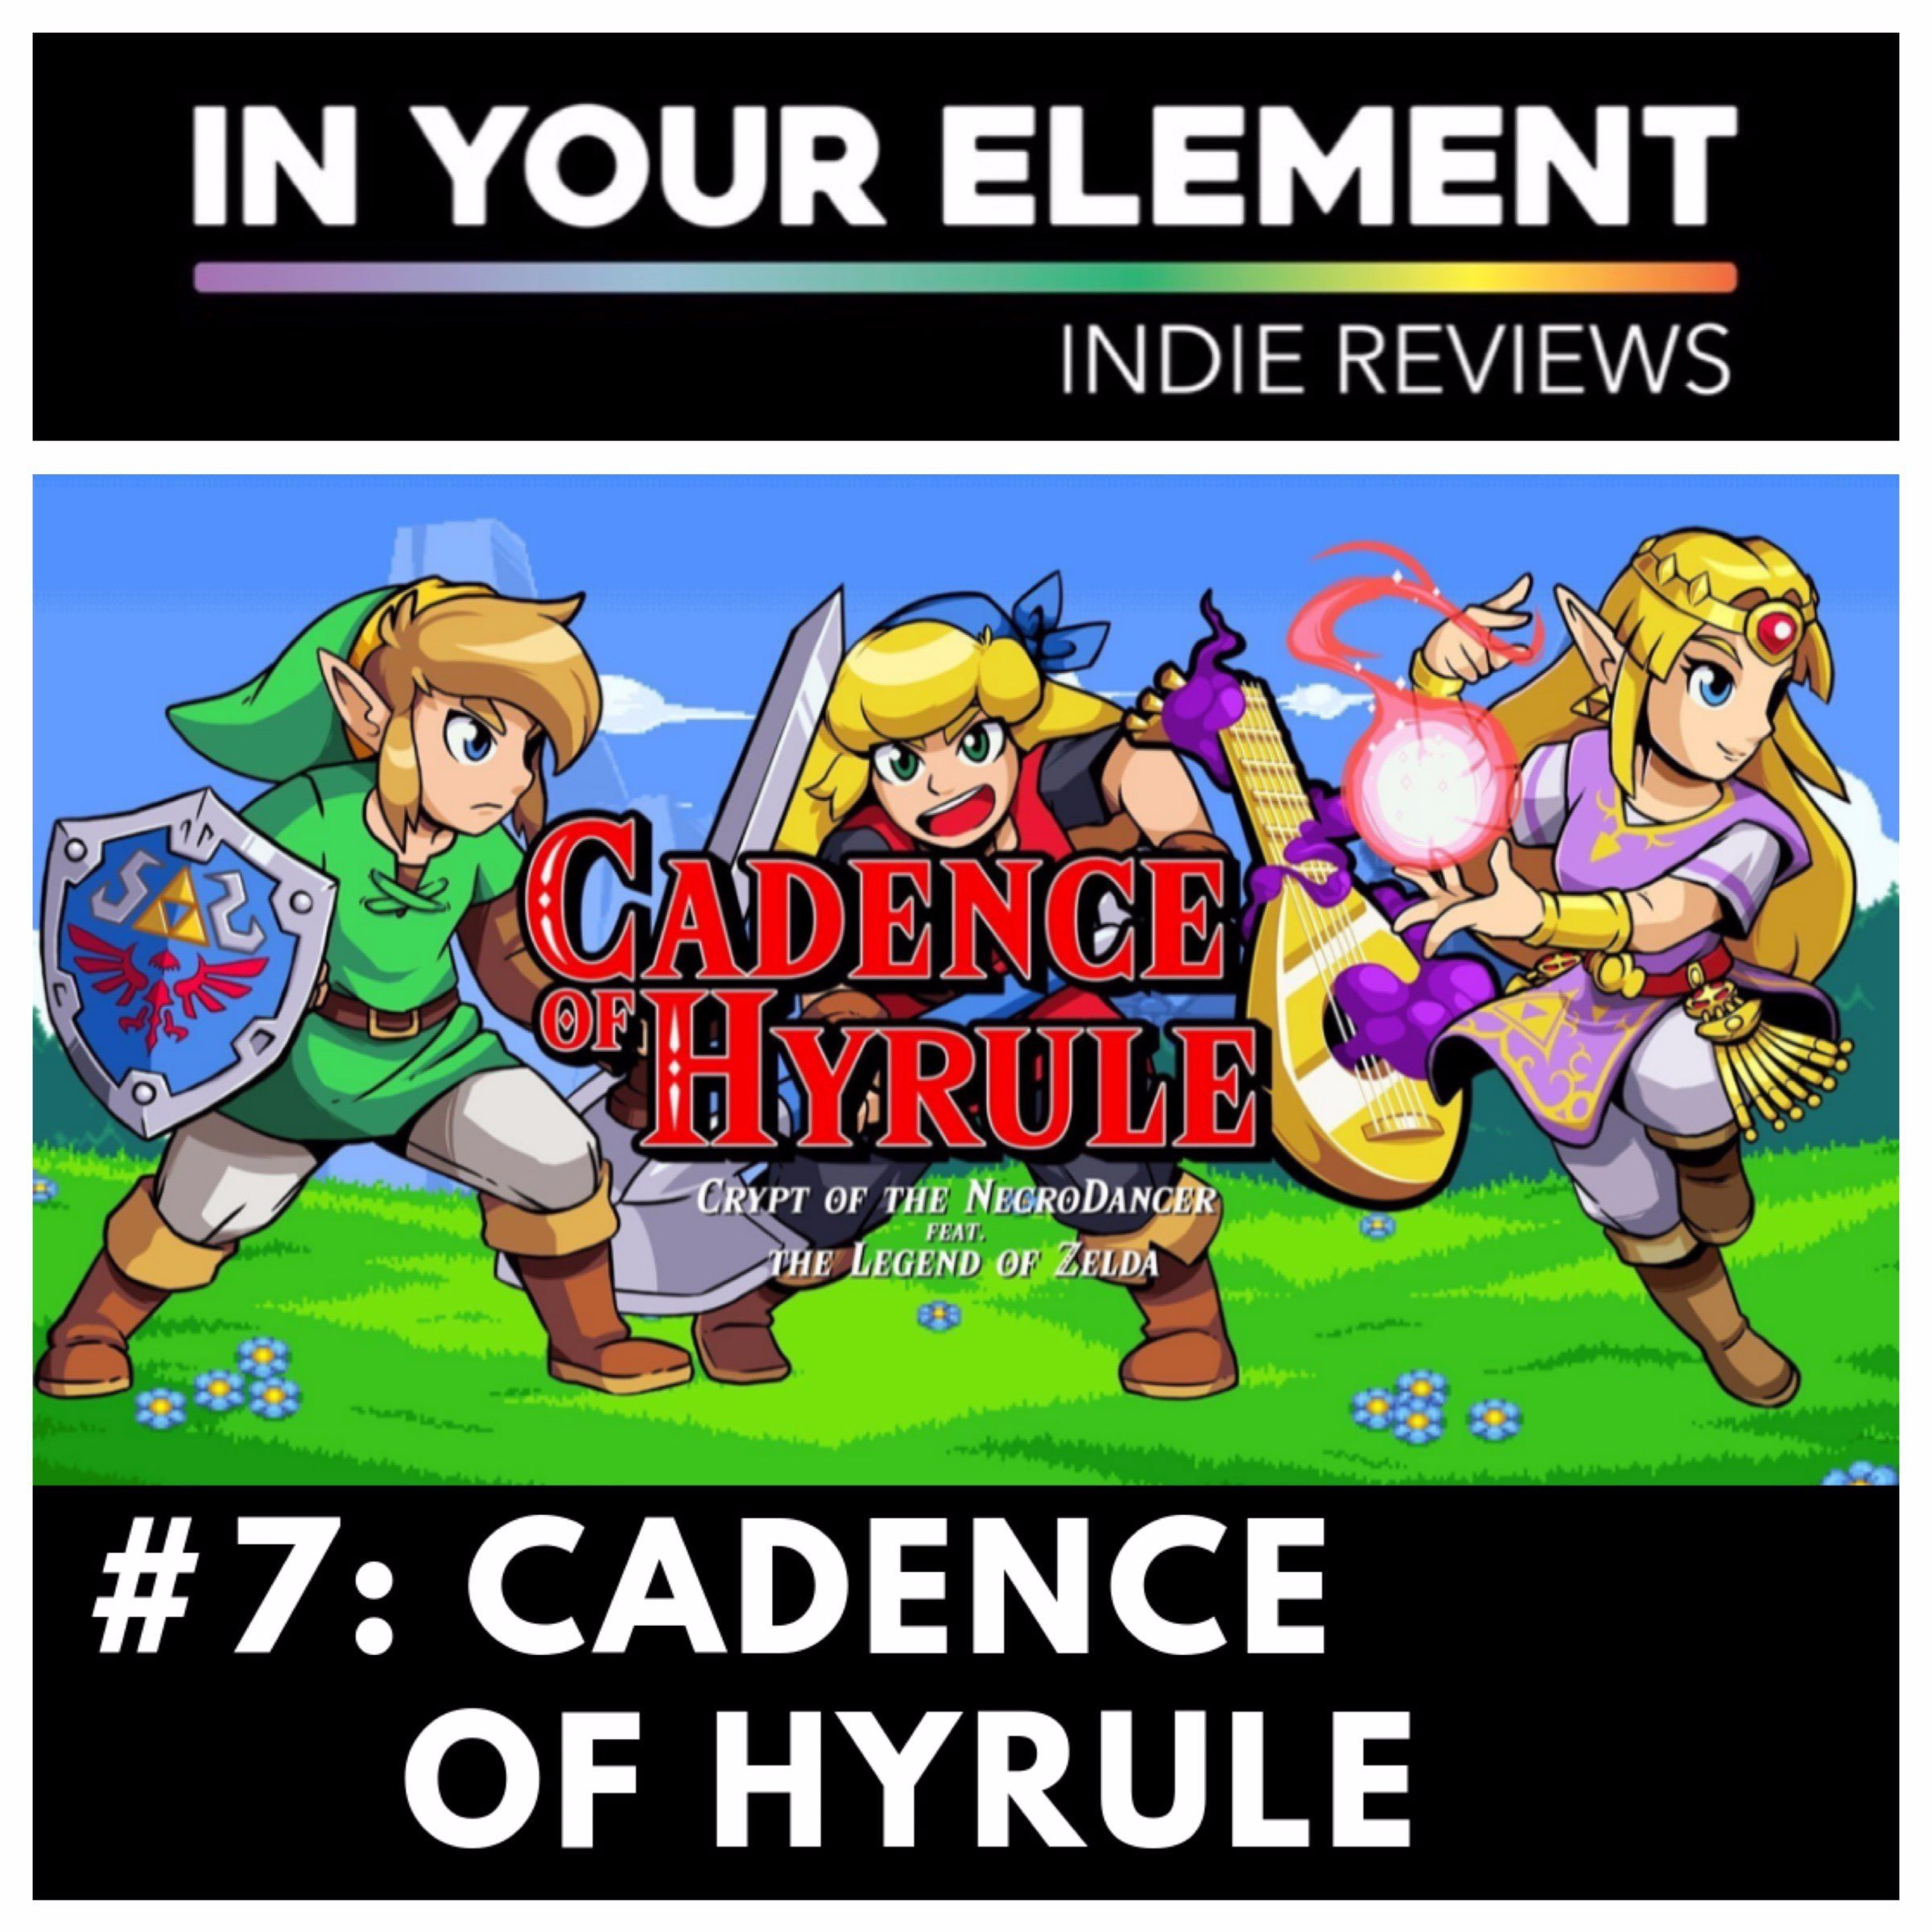 Indie Reviews #7: Cadence of Hyrule (Crypt of the NecroDancer Featuring The Legend of Zelda)